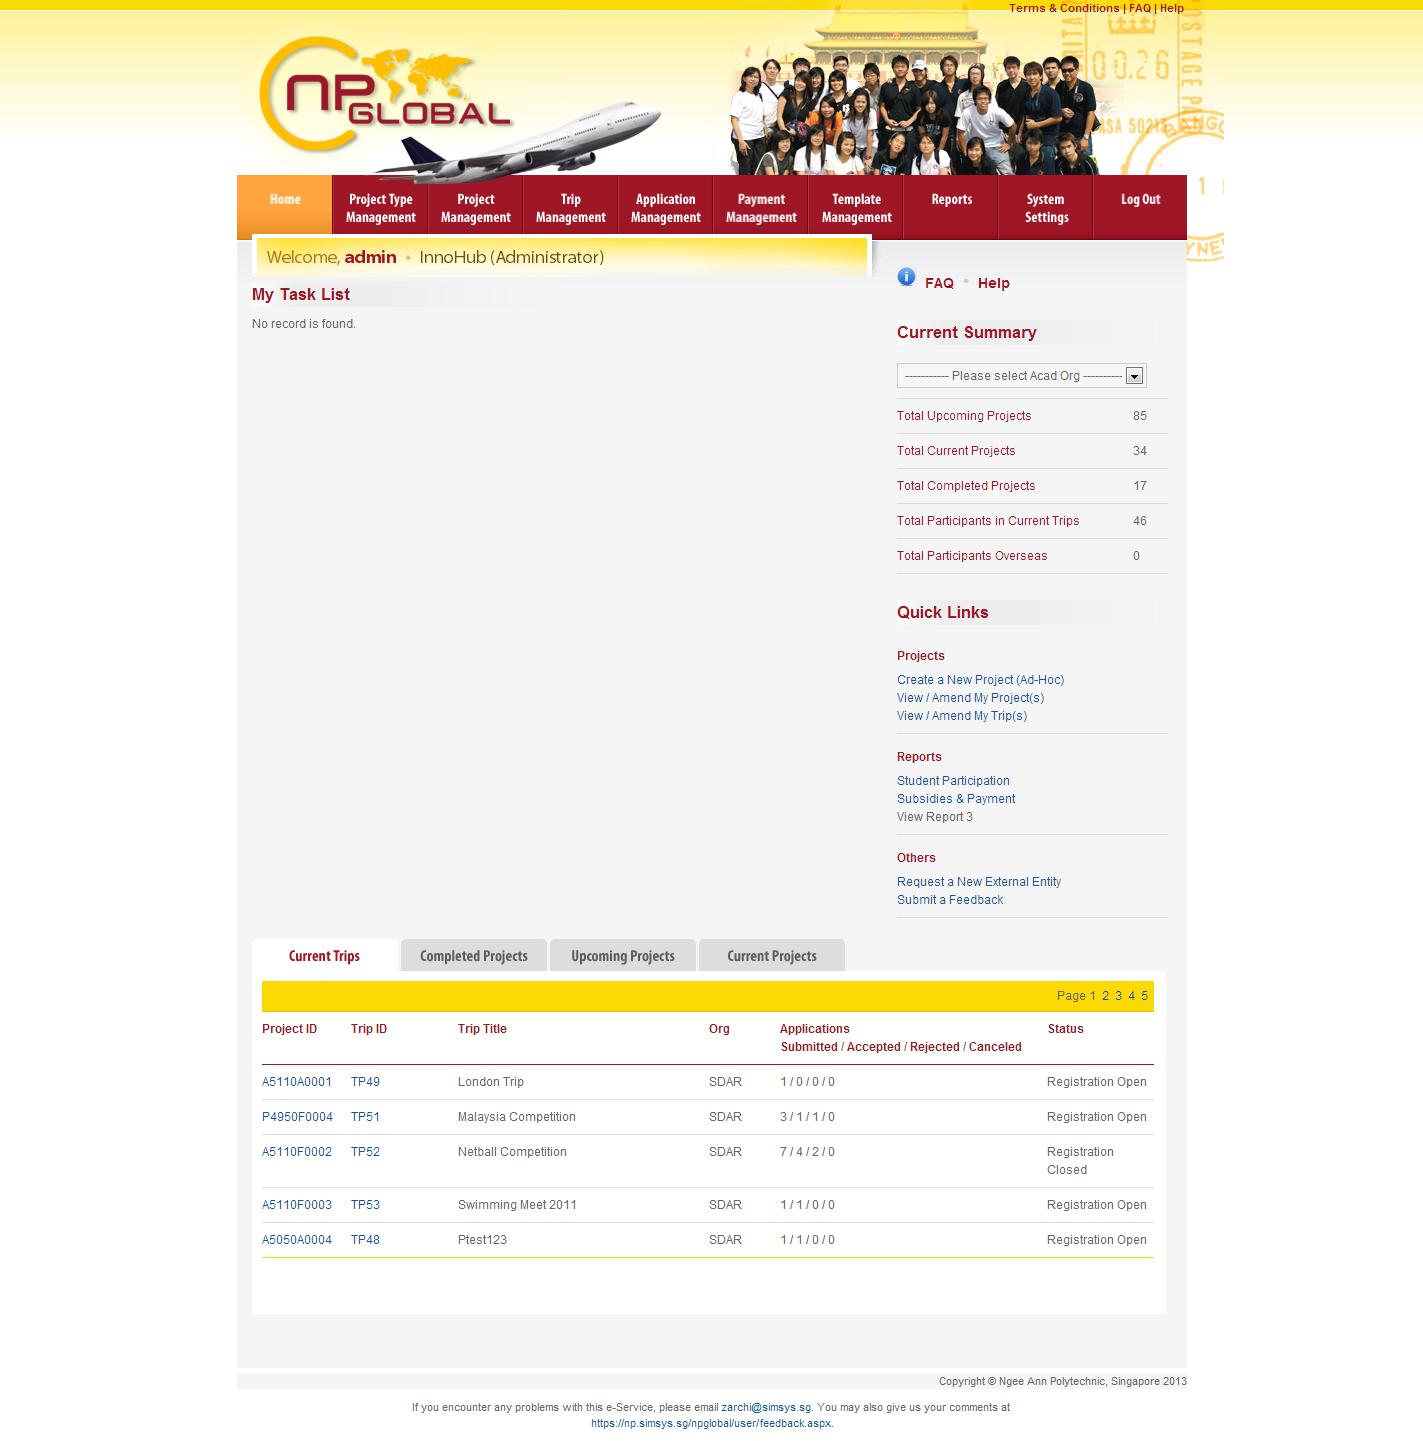 Ngee Ann Polytechnic - Overseas Student Project Portal Image 1